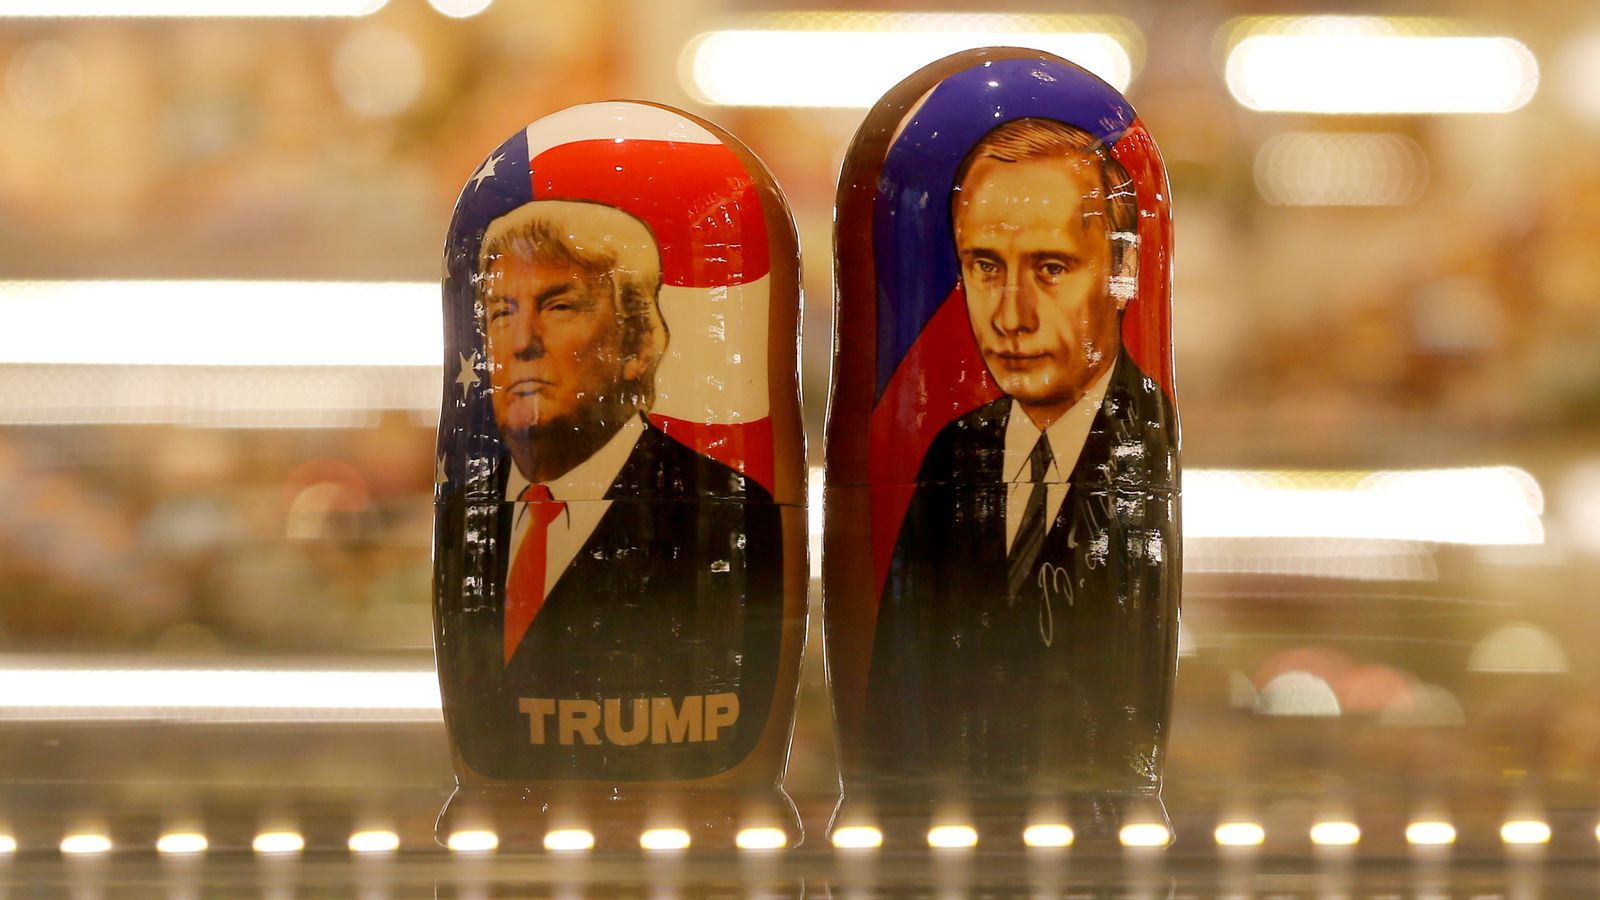 Fact-checking Trump's claim that he has no business ties to Russia